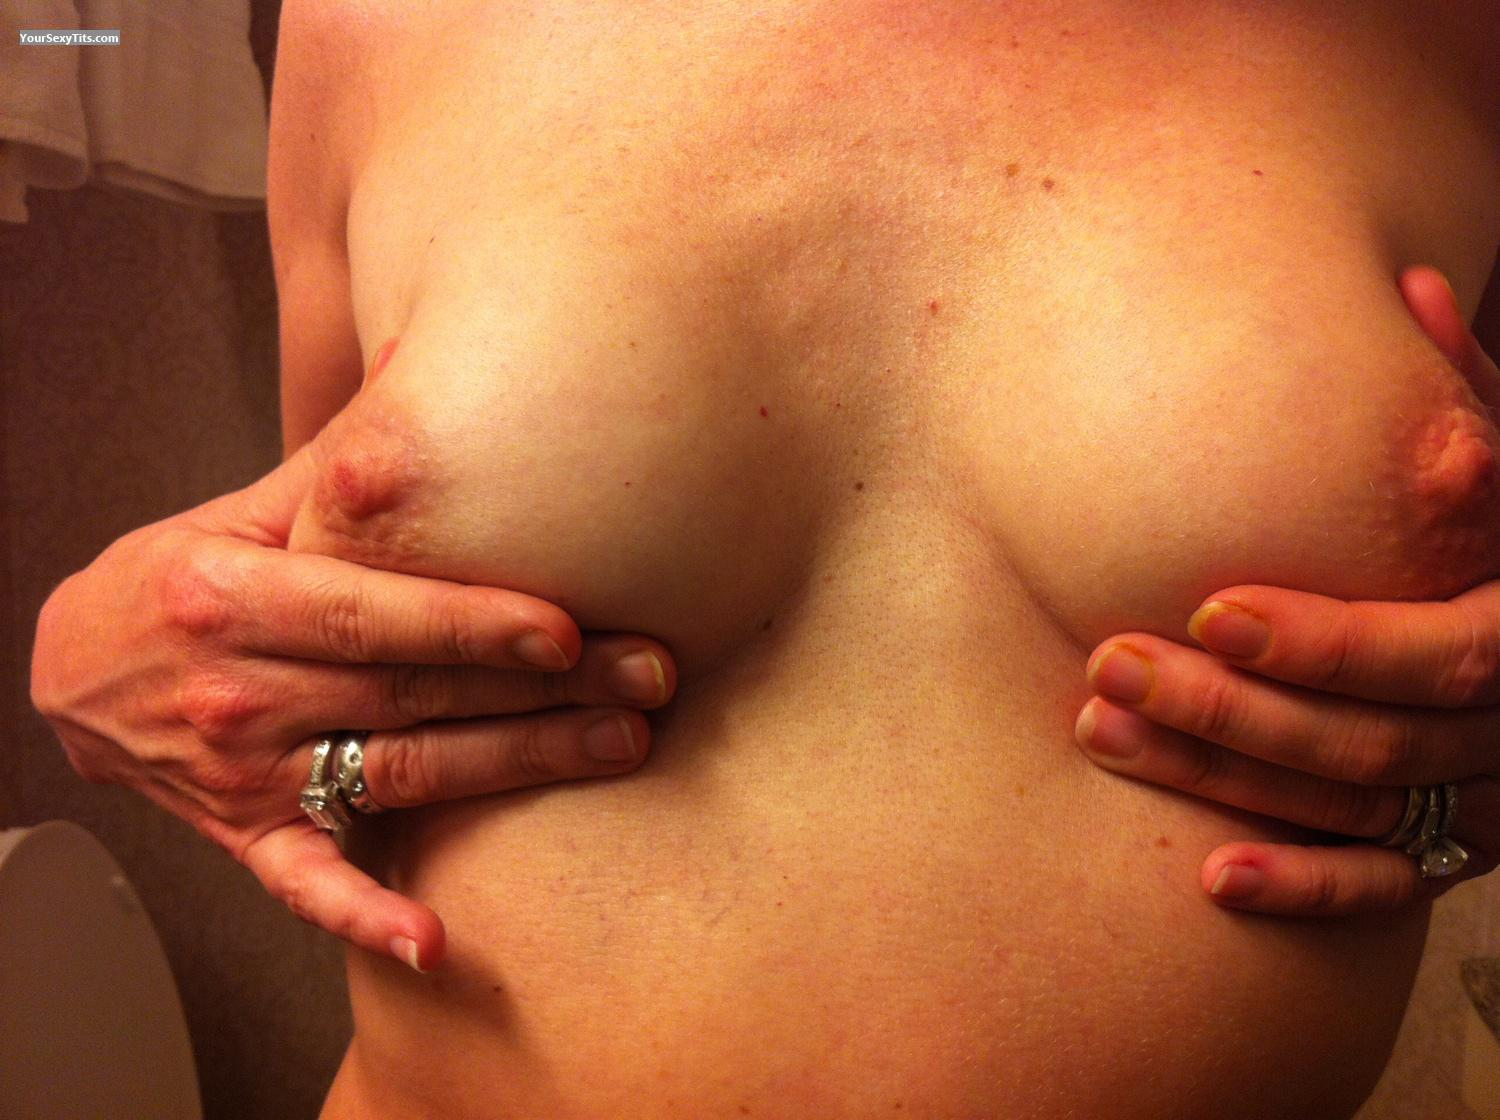 Tit Flash: Small Tits By IPhone - Shy from United States